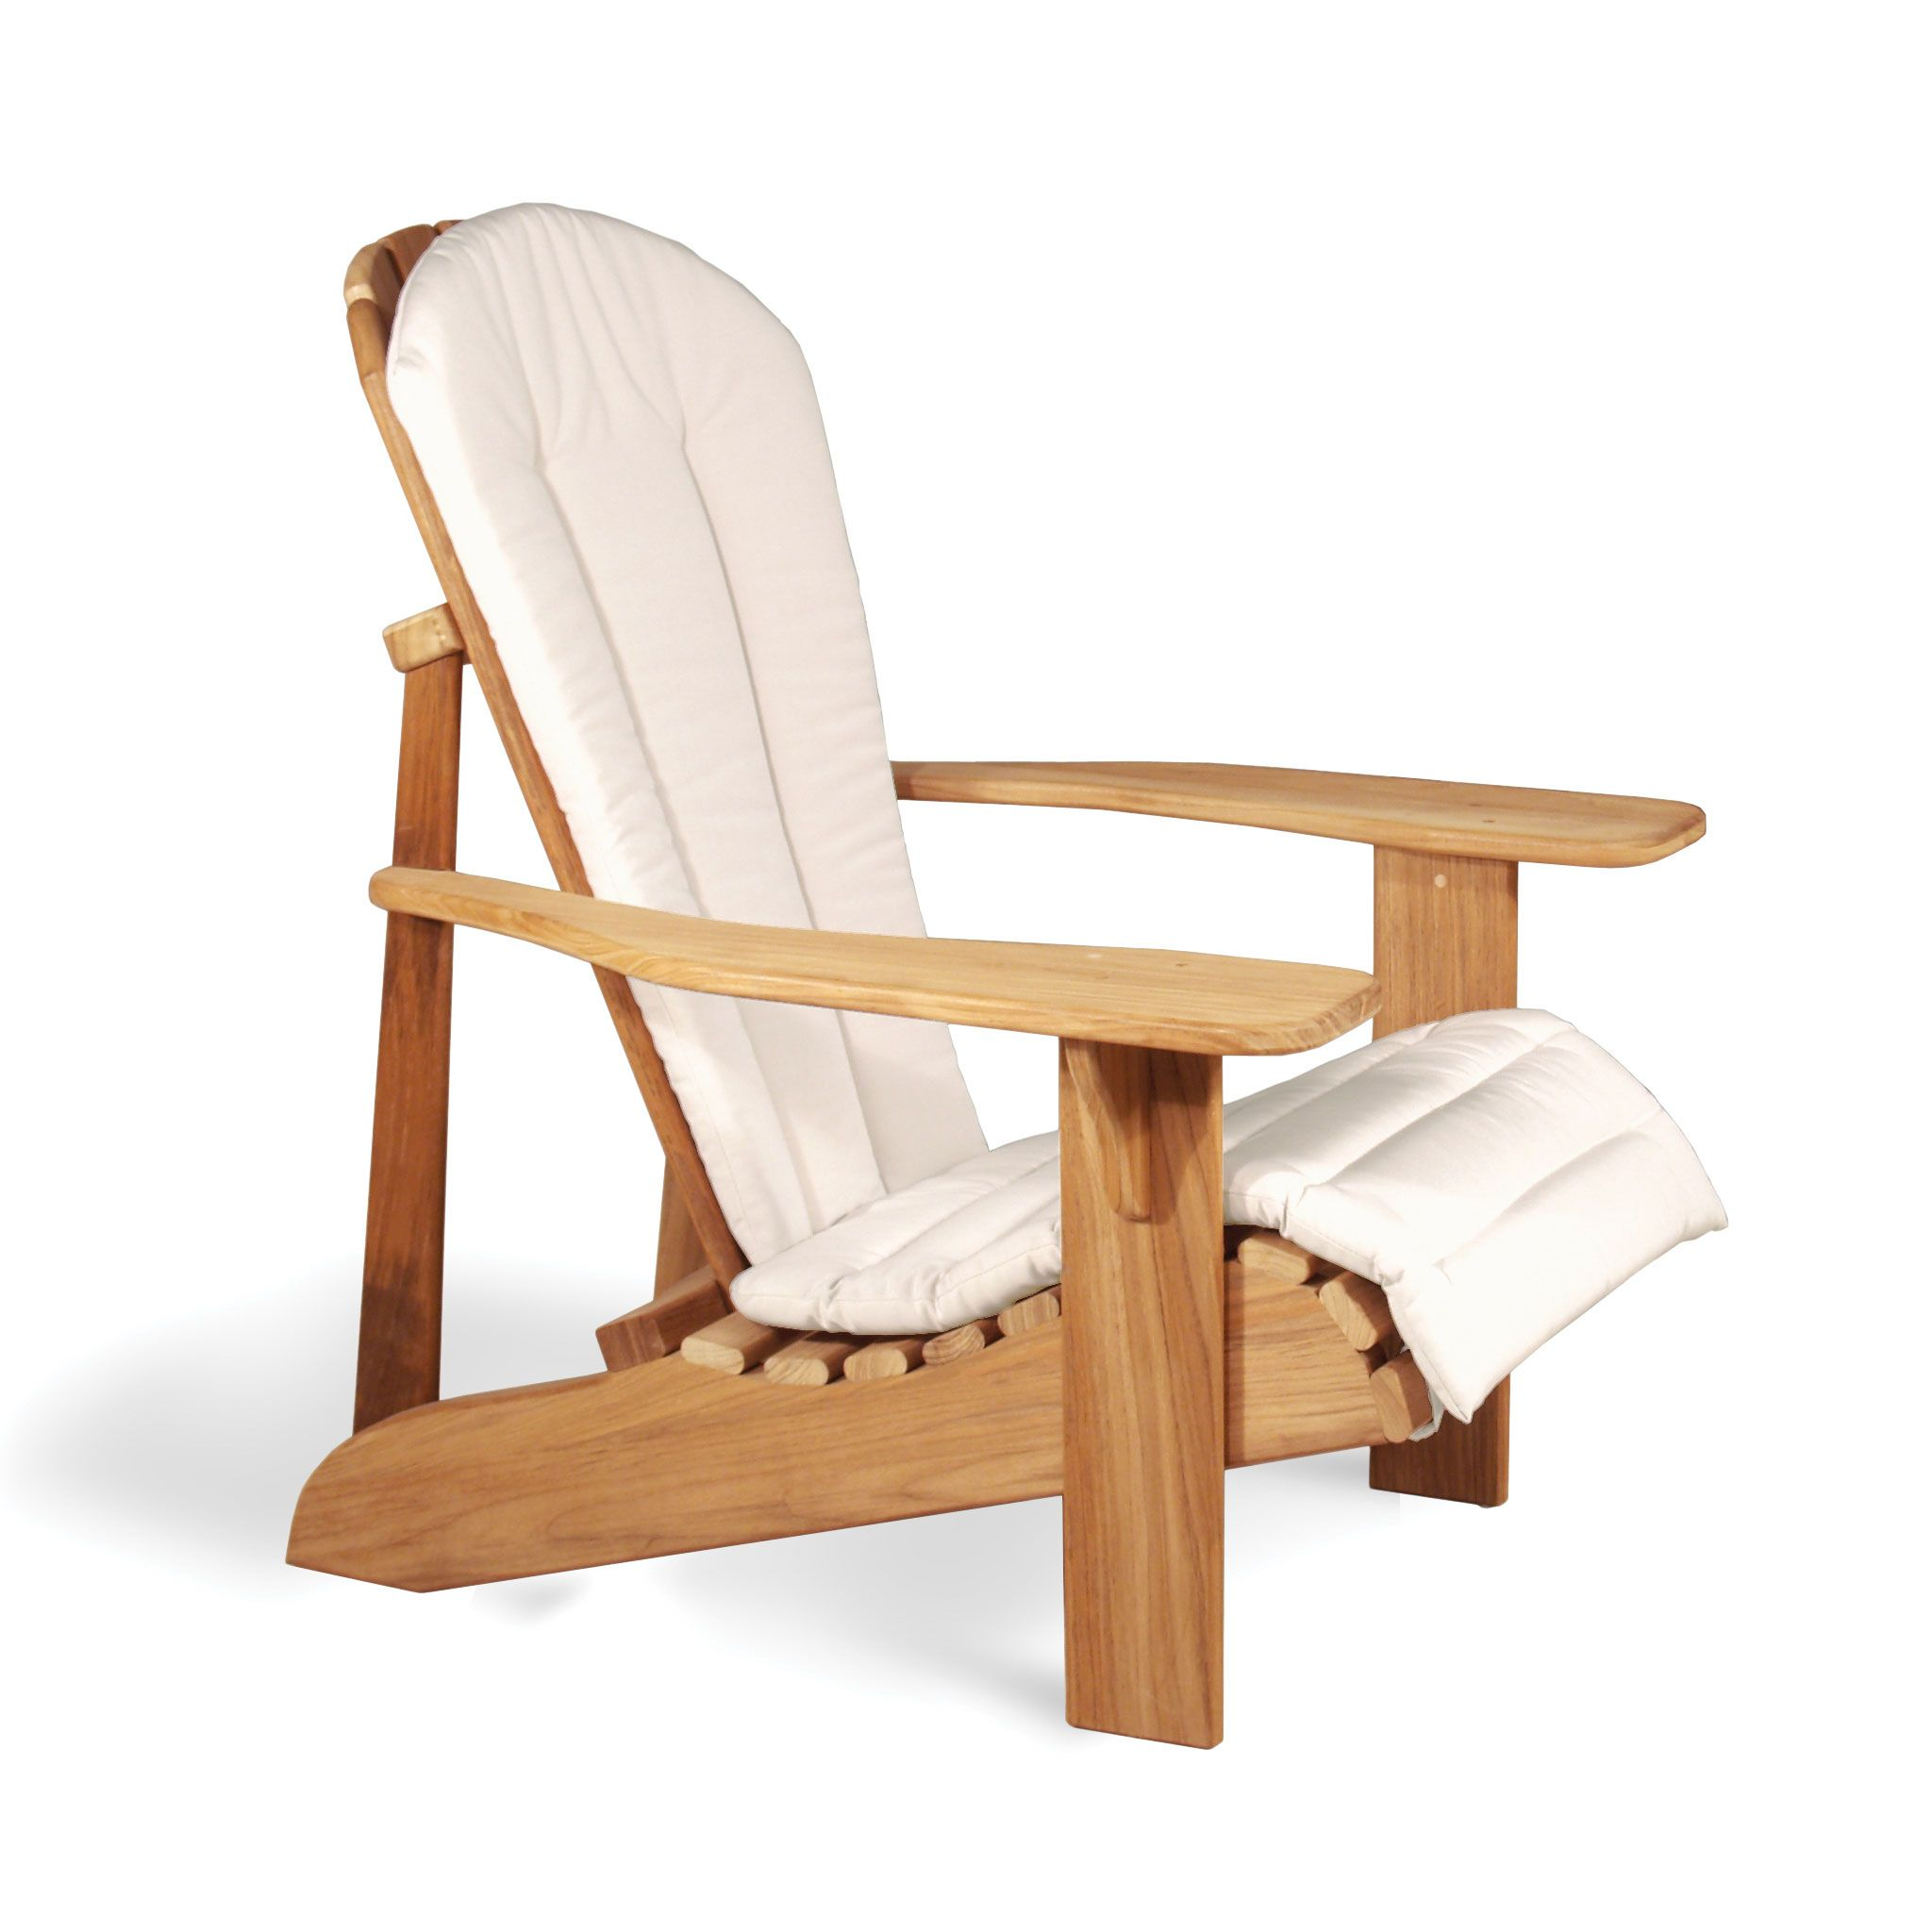 Amazing White Cushions For Adirondack Chairs With Sitting Comfort ...